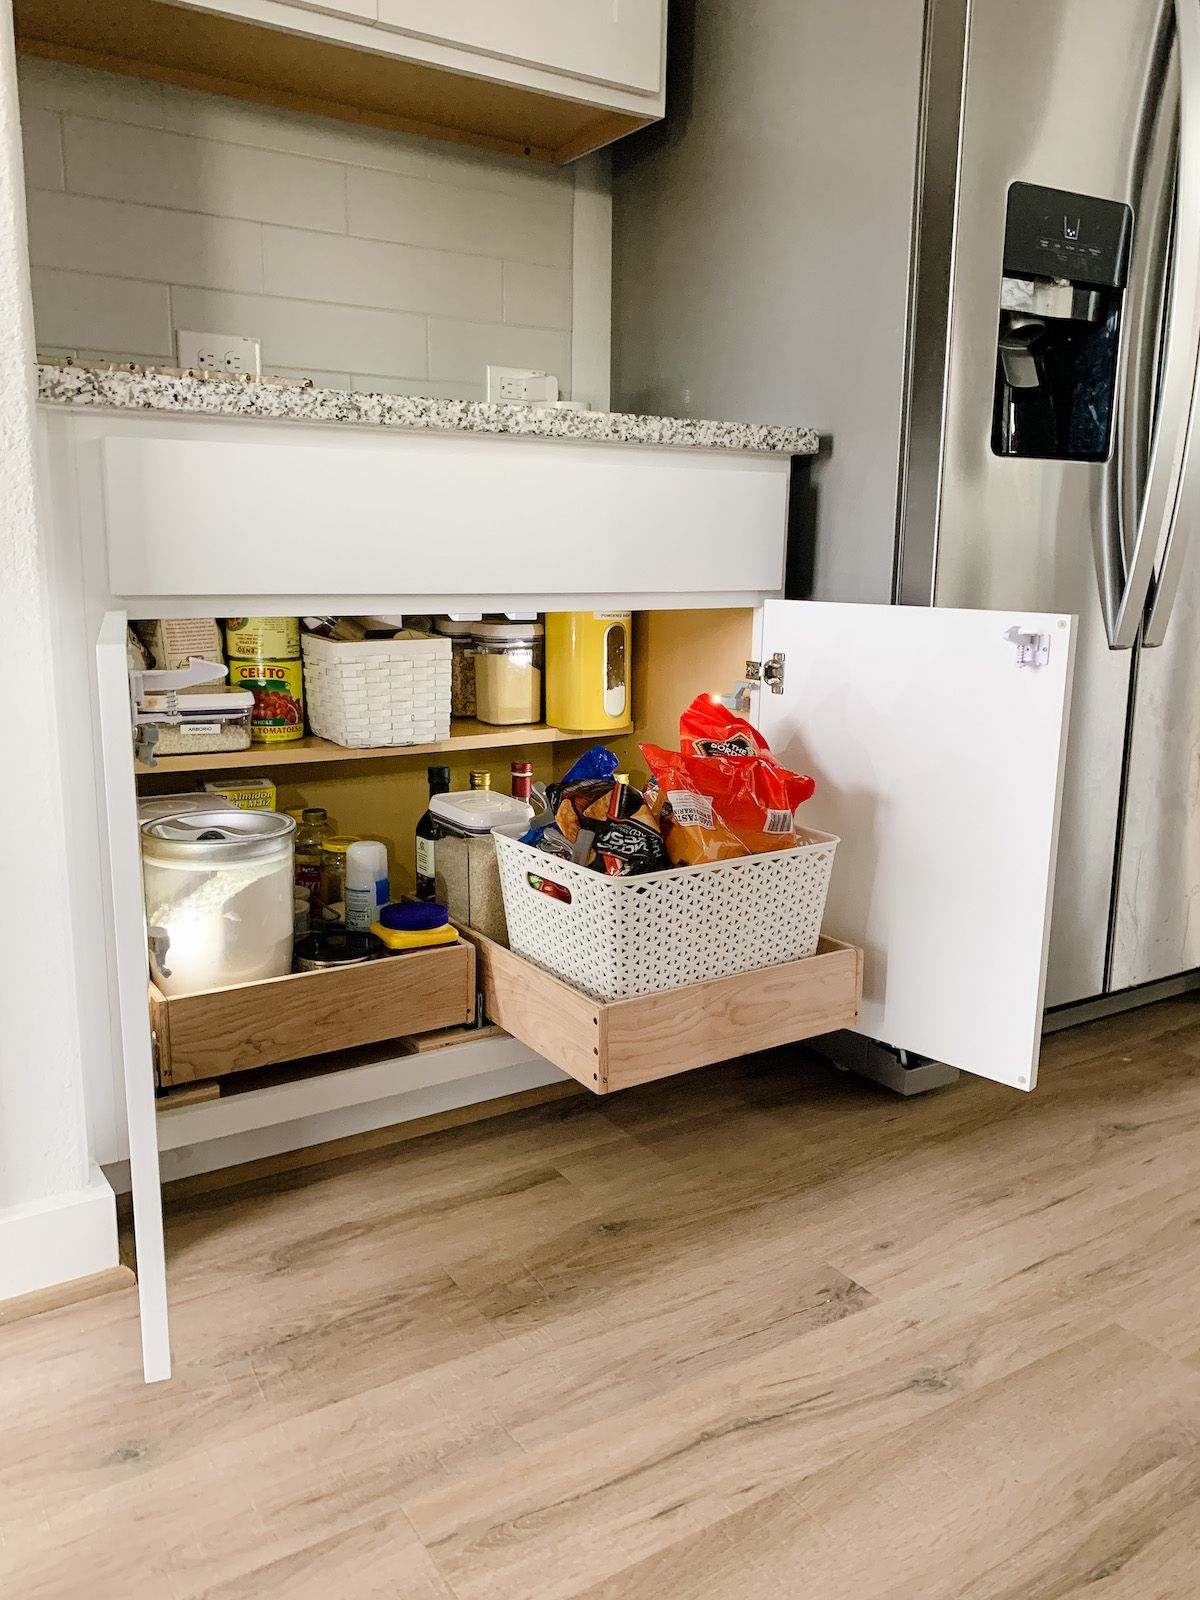 How to make pull out drawers for your kitchen cabinets in ...